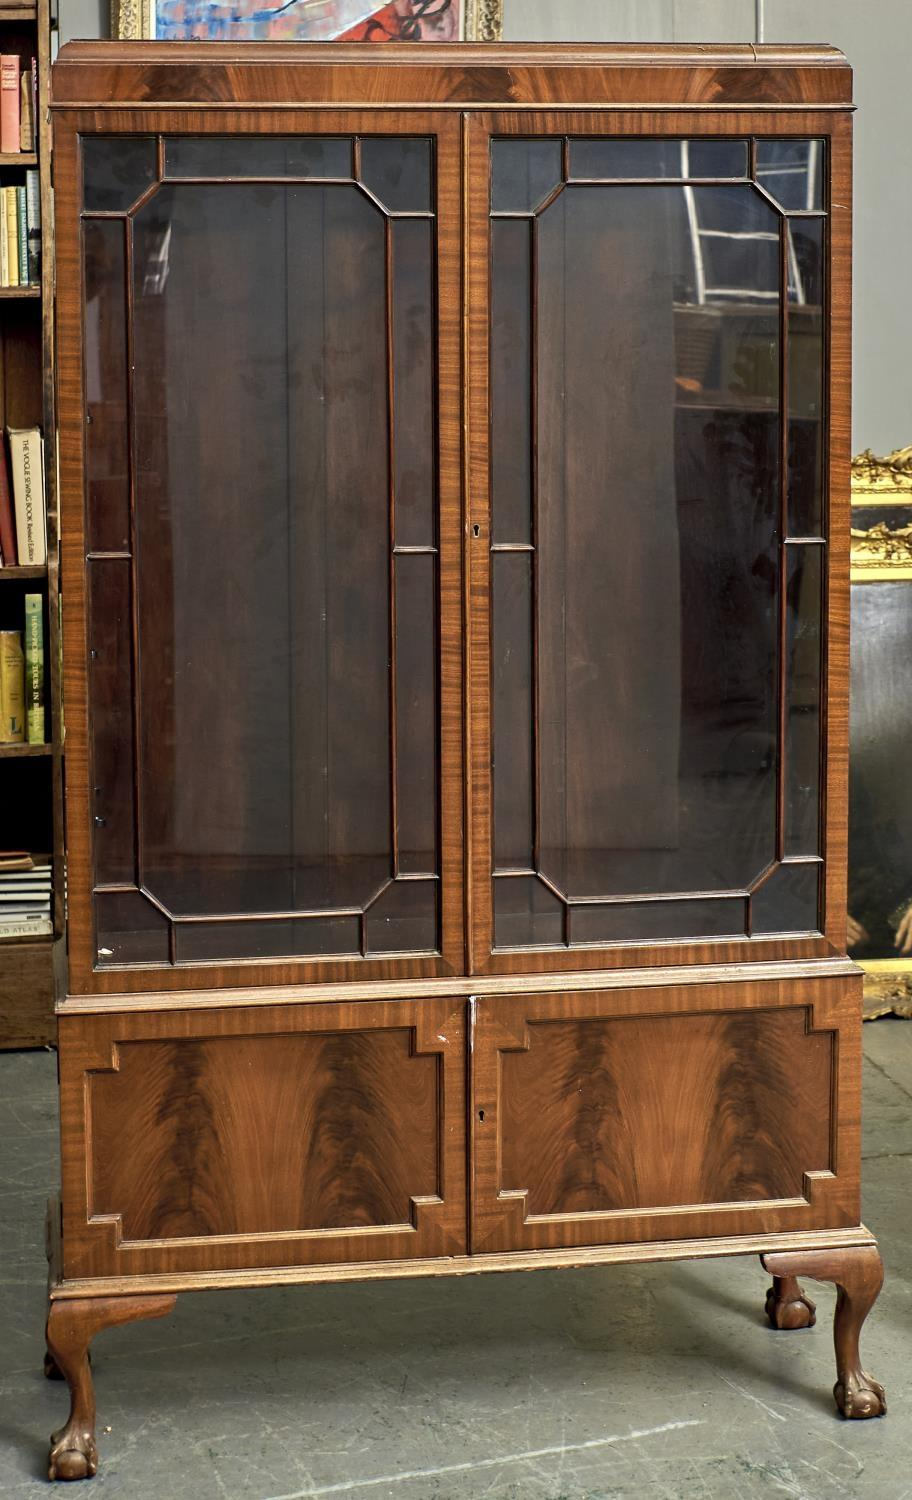 A DISPLAY CABINET IN GEORGE III STYLE, C1930, THE CADDY TOP ABOVE A FIGURED FRIEZE AND PAIR OF